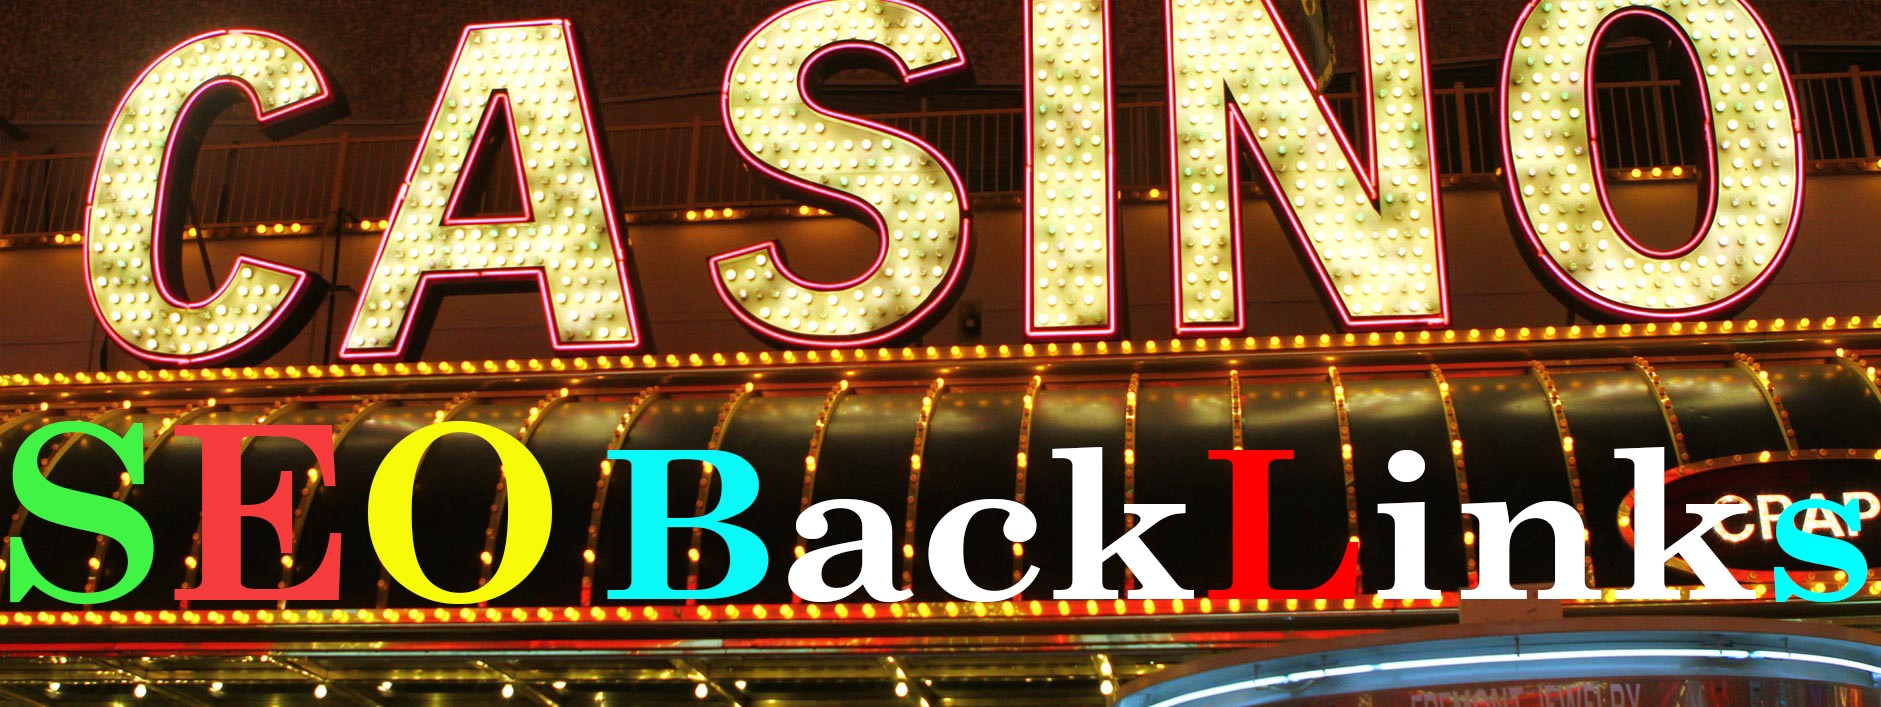 GET 400+ PRIMIUM CASINO PBN Backlink homepage web 2.0 with HIGH DA/PA/CF/TF WITH UNIQUE WEBSITE